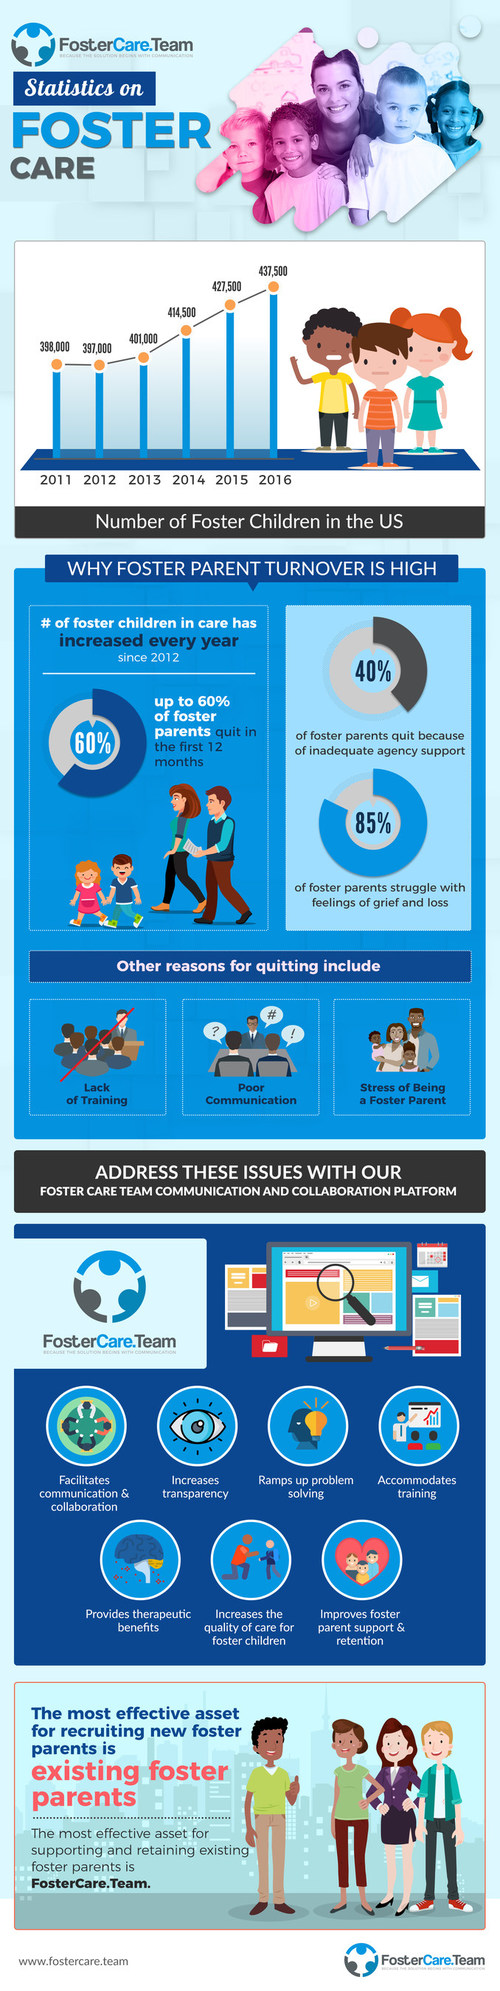 FosterCare.Team Infographic - an easy way to understand the challenges facing foster care agencies and foster parents, and how FosterCare.Team offers a solution to those challenges.